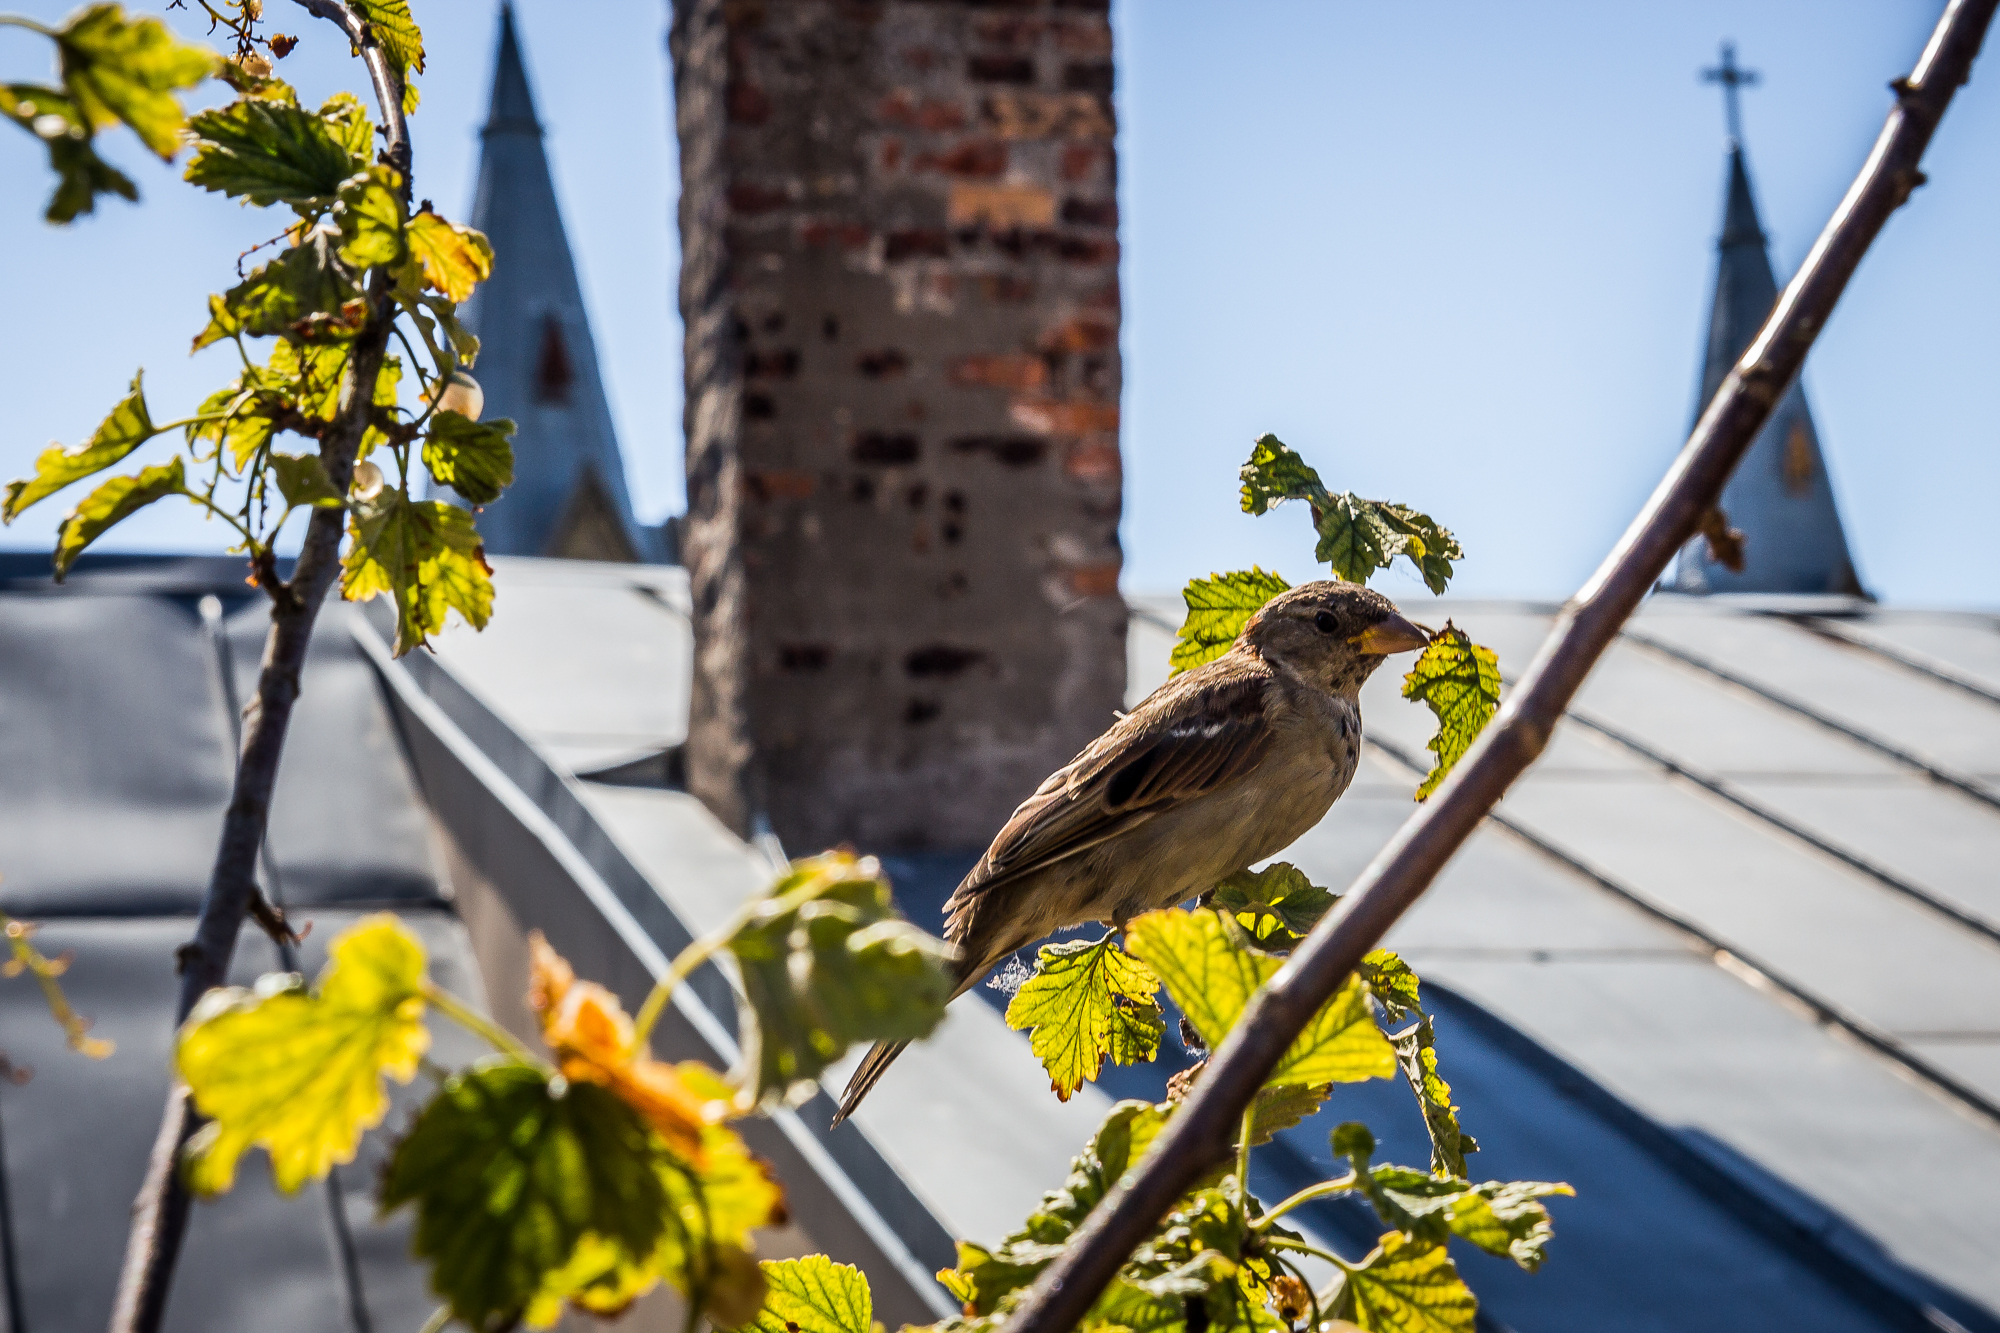 Sparrow On Roof Via @Atisgailis